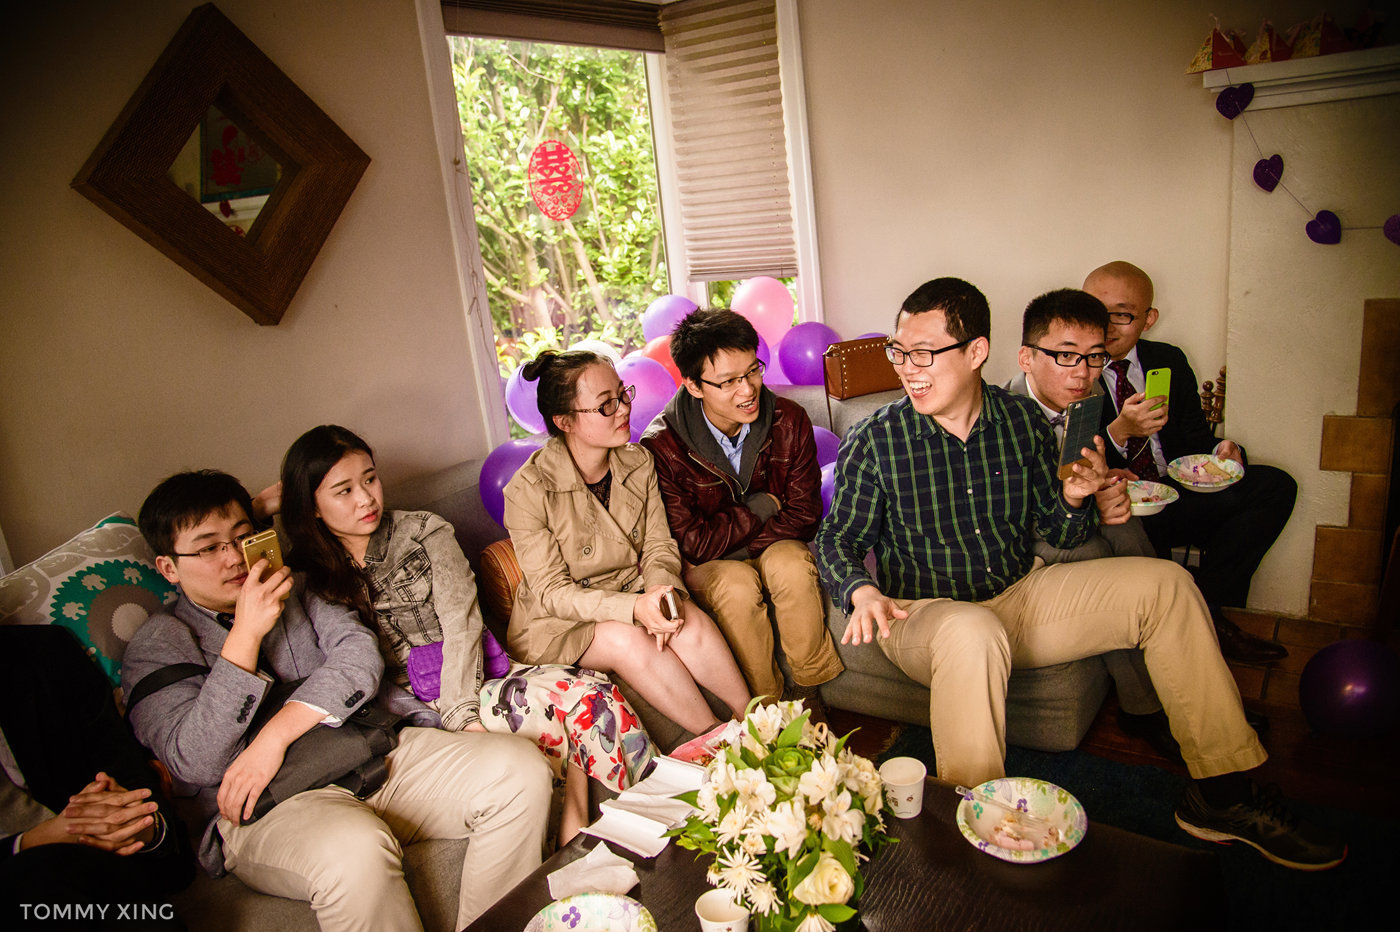 Seattle Wedding and pre wedding Los Angeles Tommy Xing Photography 西雅图洛杉矶旧金山婚礼婚纱照摄影师 150.jpg